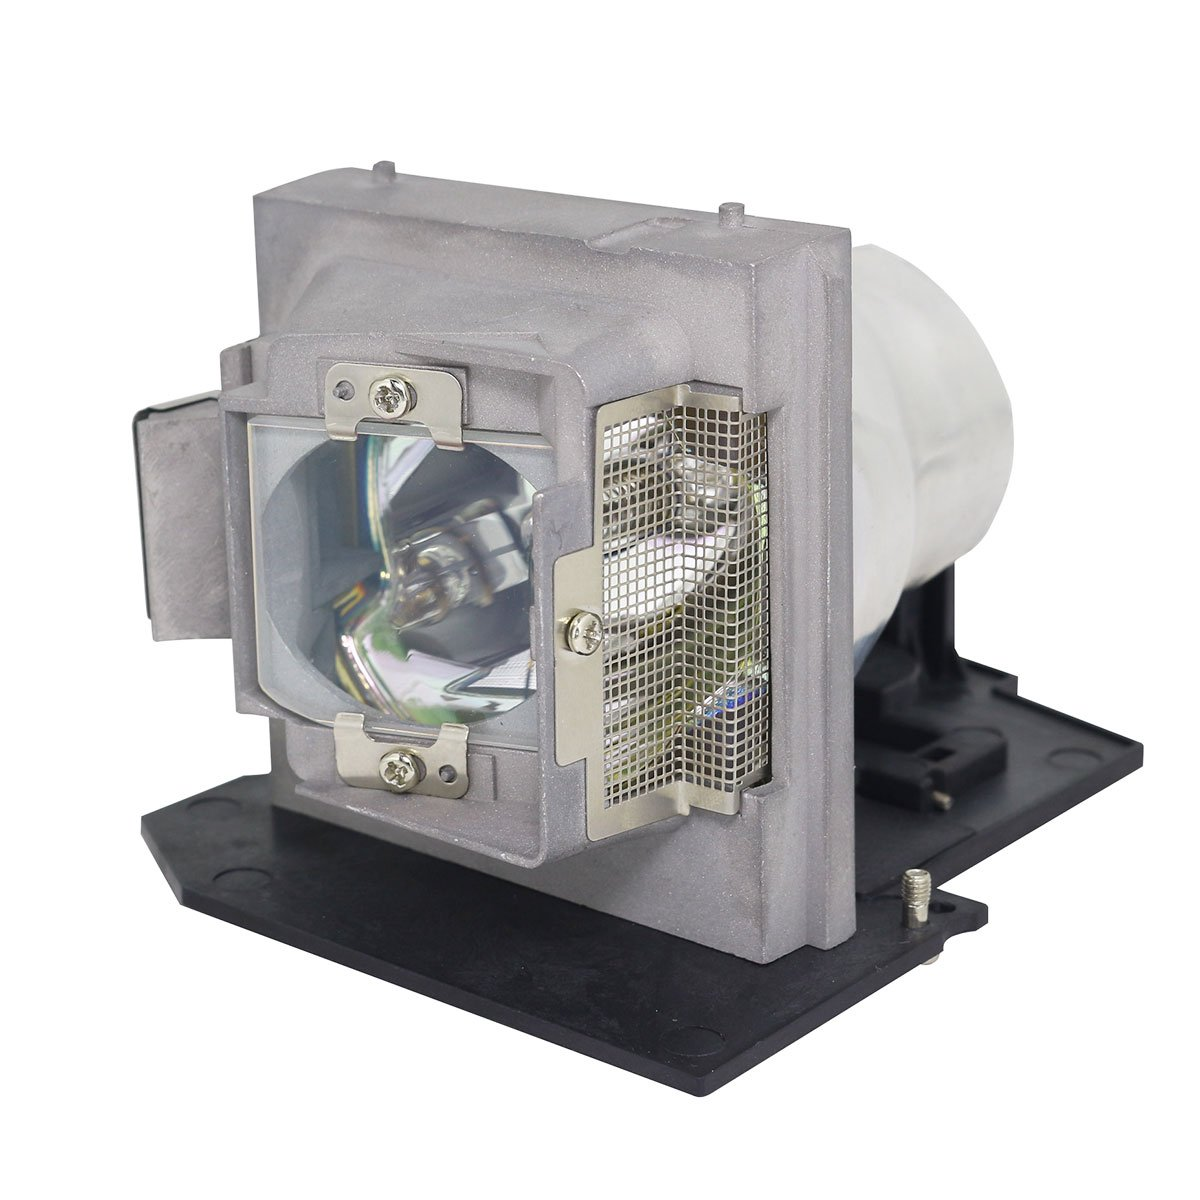 SpArc 交換用ランプ 囲い/電球付き Dell 311-9421用 Platinum (Brighter/Durable) Platinum (Brighter/Durable) Lamp with Housing B07MPRNY9M